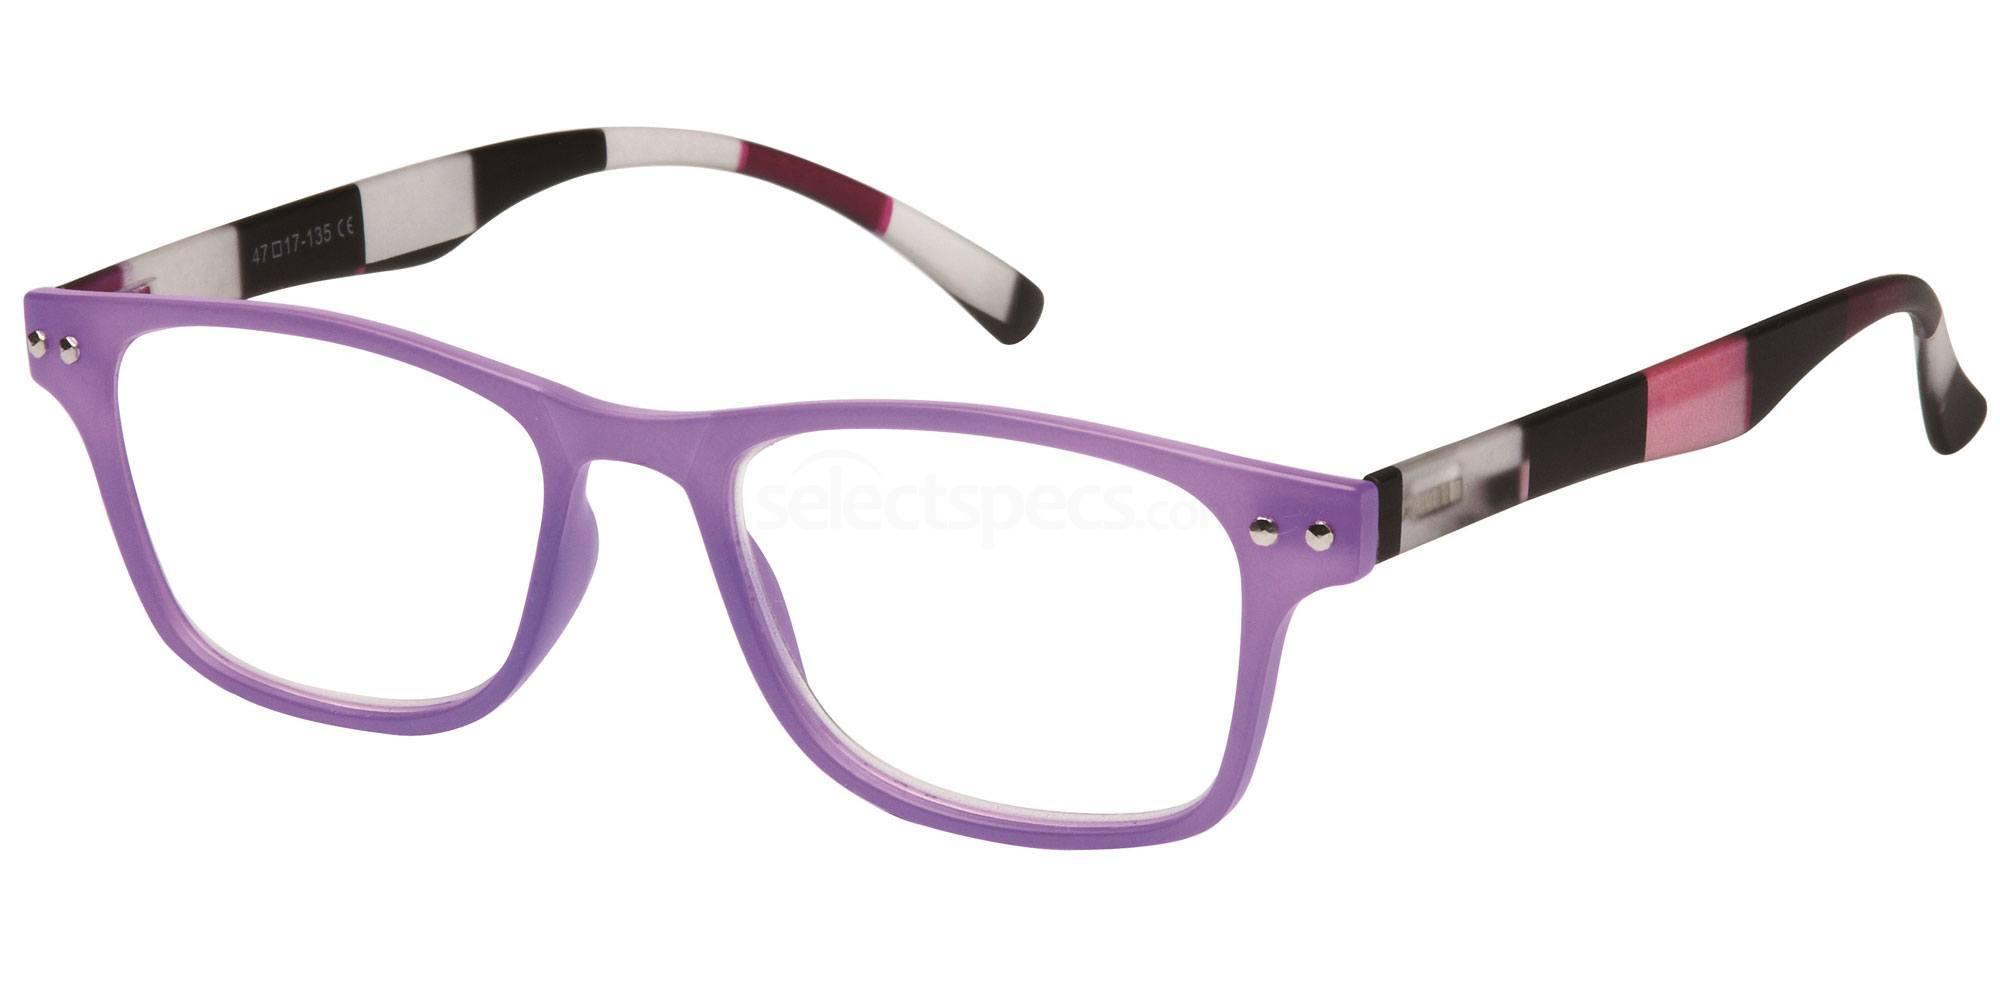 +1.00 Power Readers R15D - D: Lilac Accessories, Univo Readers